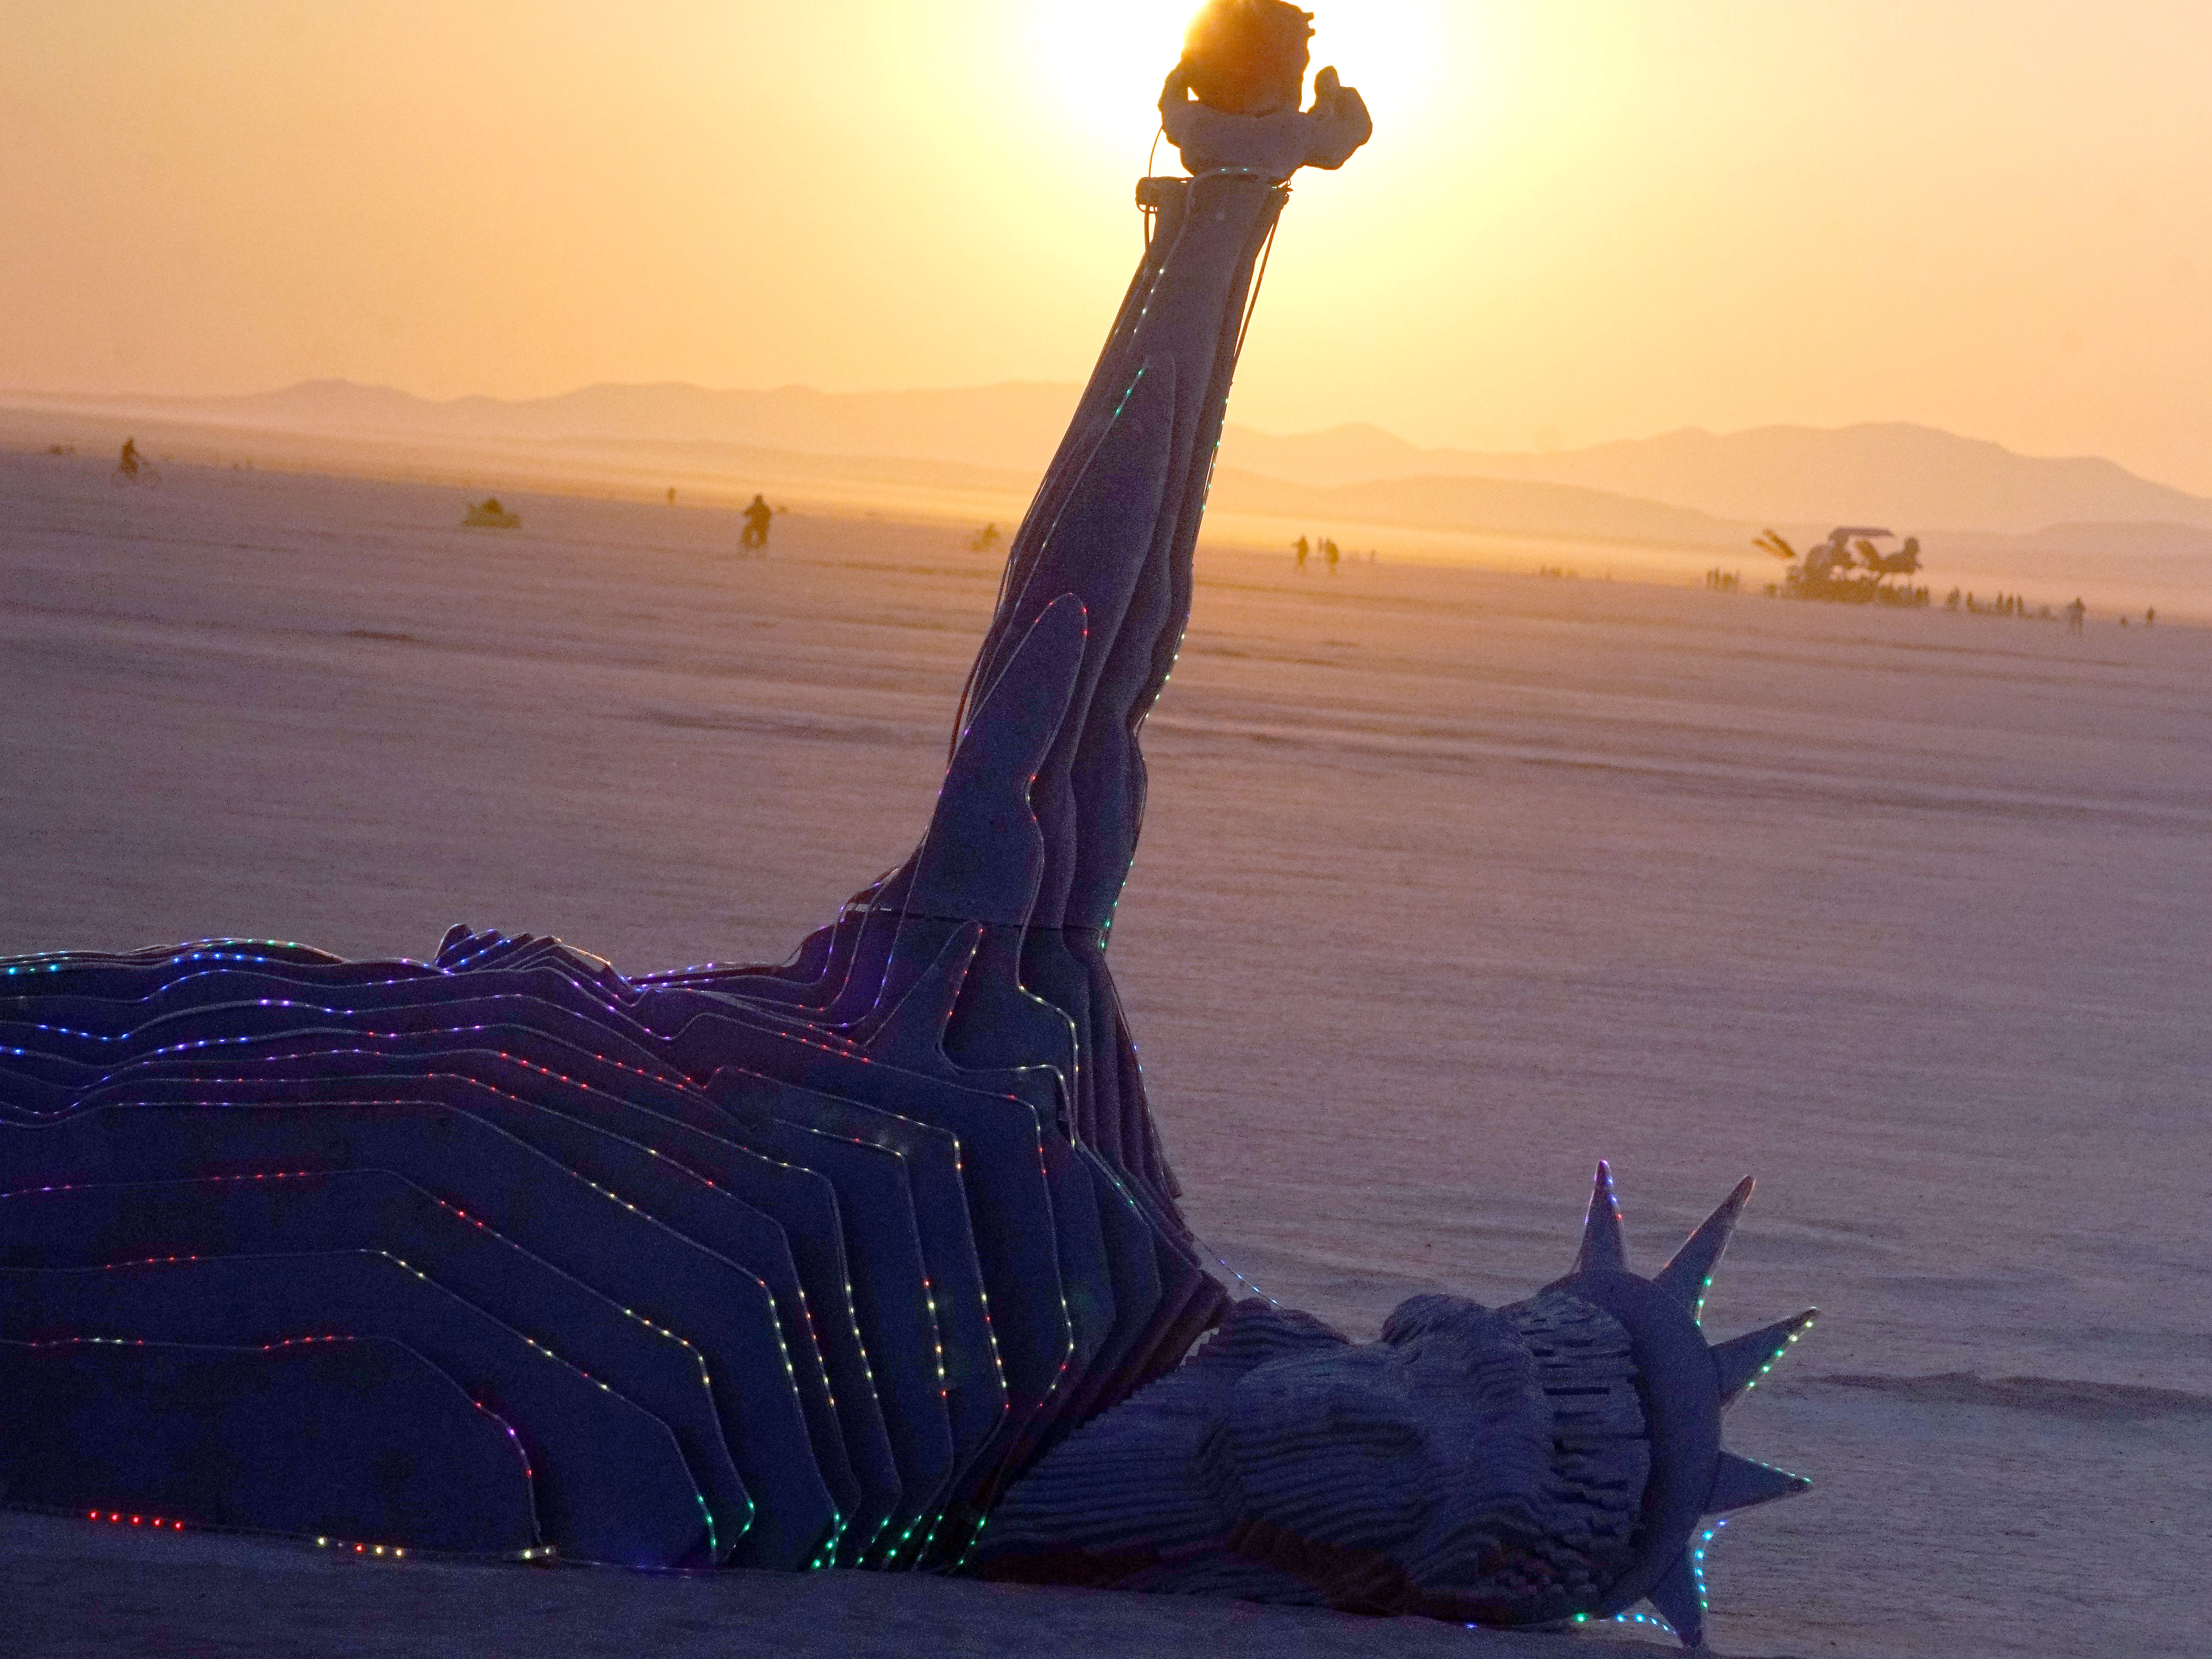 A piece of art at Burning Man depicts the Statue of Liberty laid down on the ground, her heart ripped out and held in her outstretched hand Sept. 1, 2018.